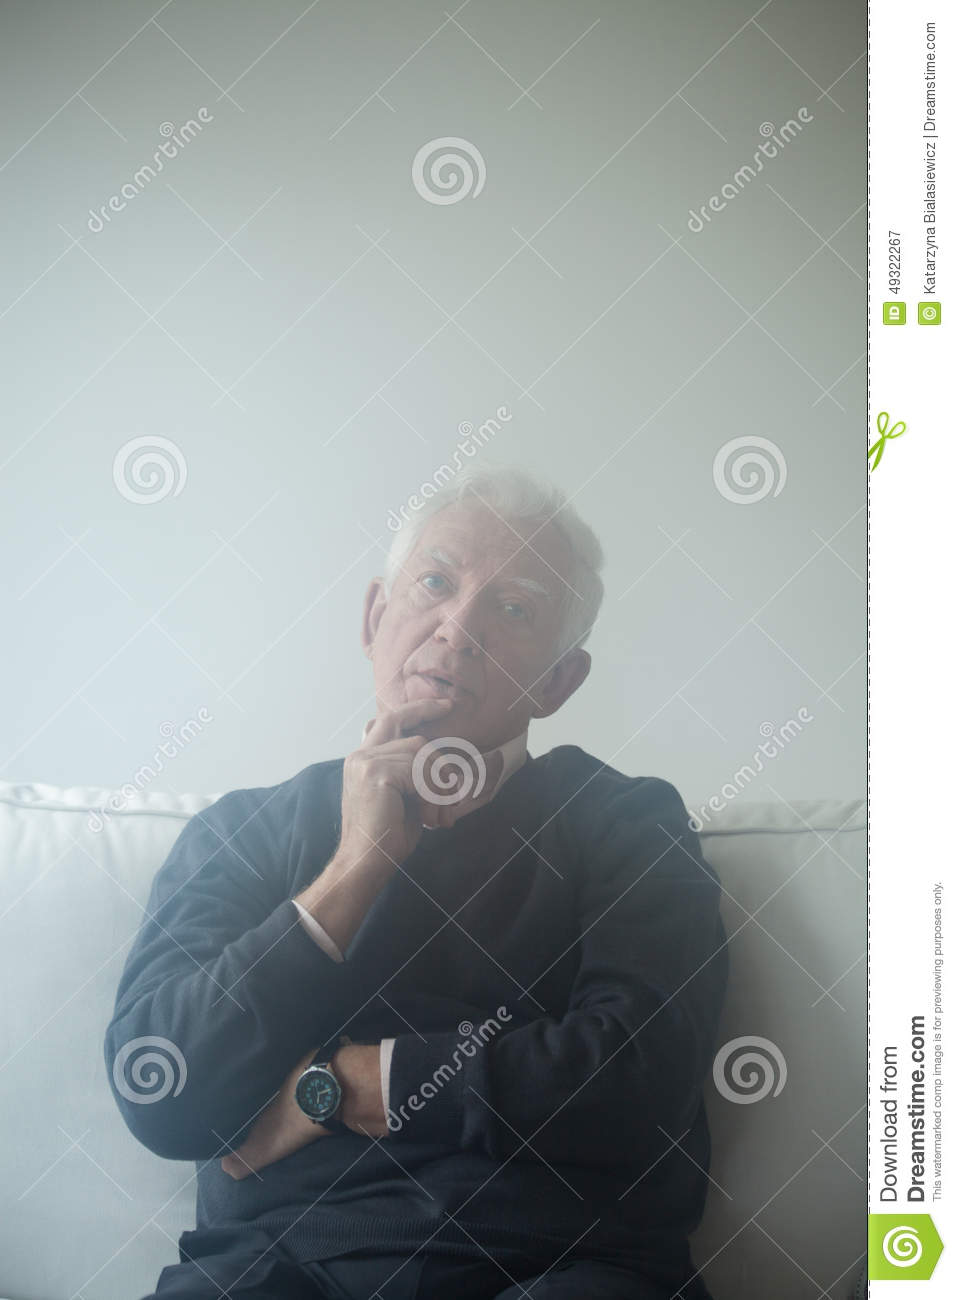 Sad Man Sitting On The Sofa Stock Image - Image: 49322267